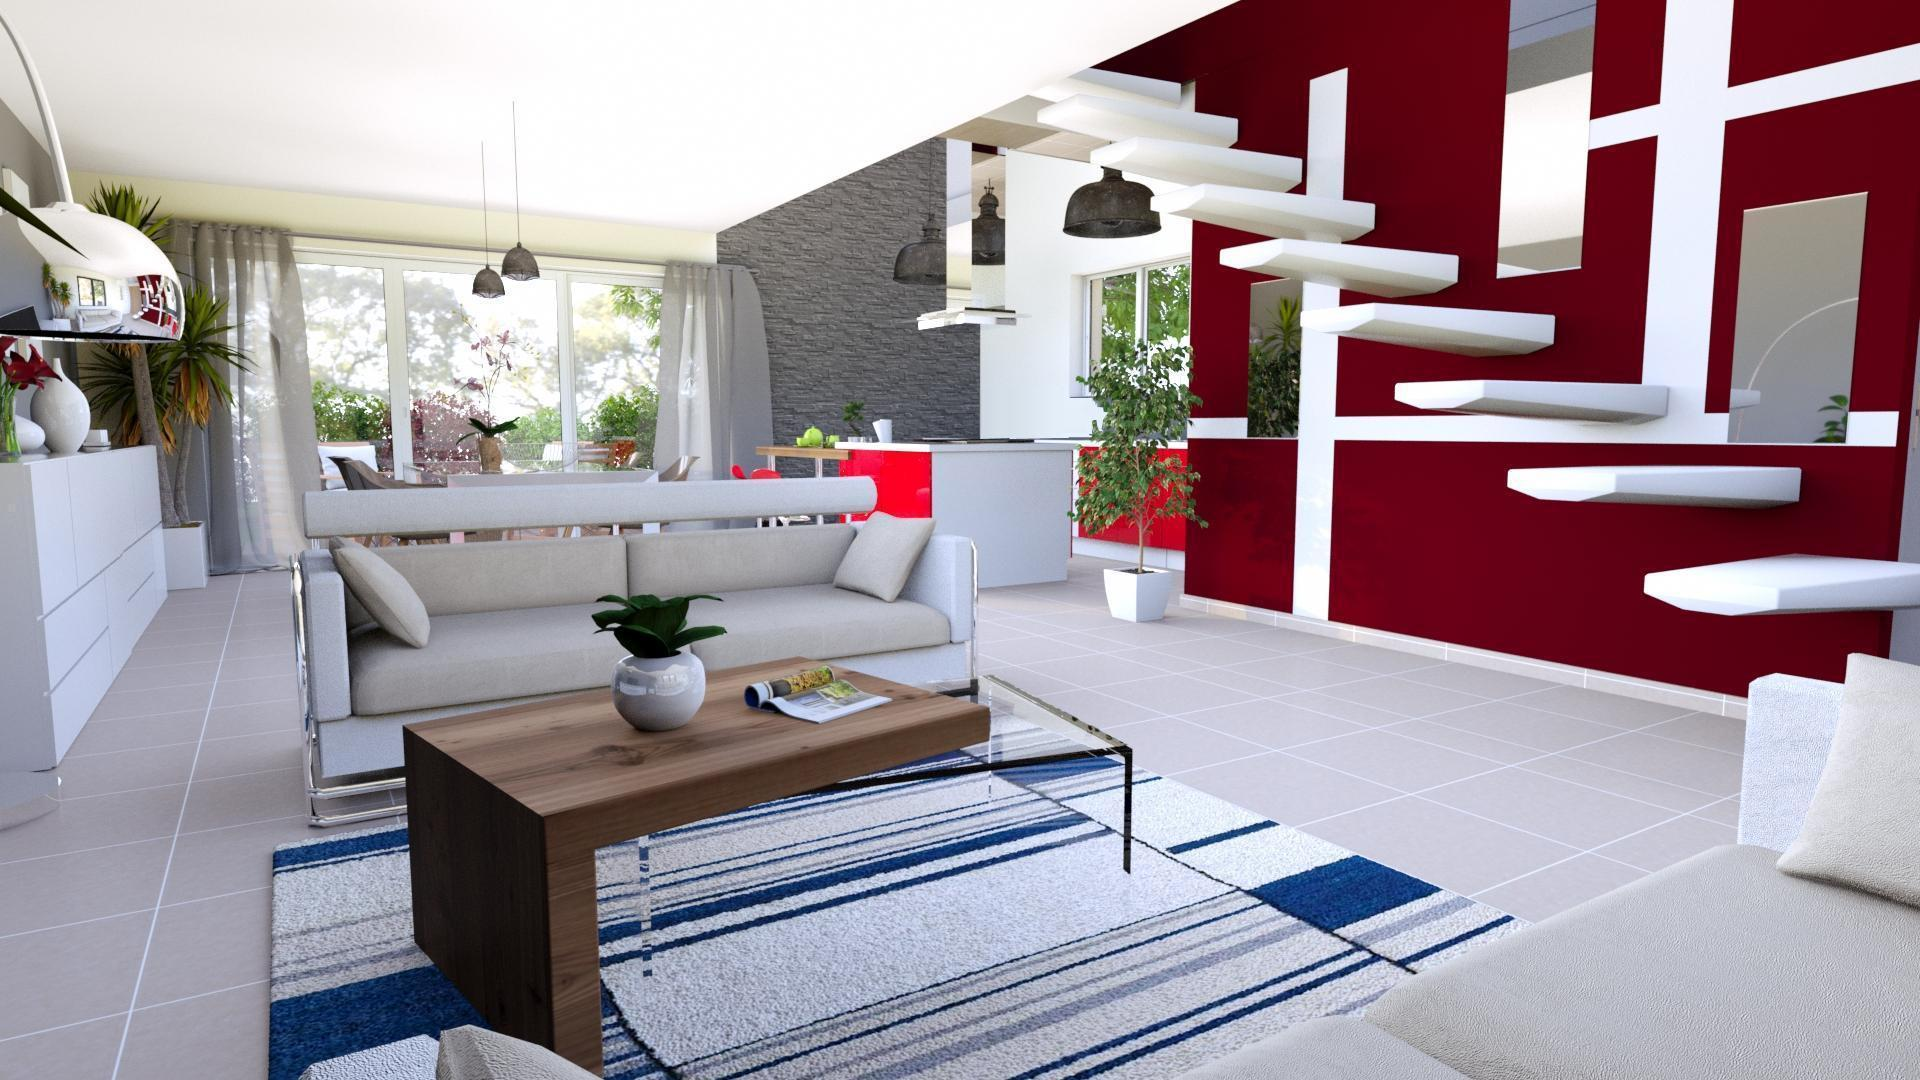 Gamme maisons stairs plans t l charger gratuitement for Diy plans de maison gratuitement